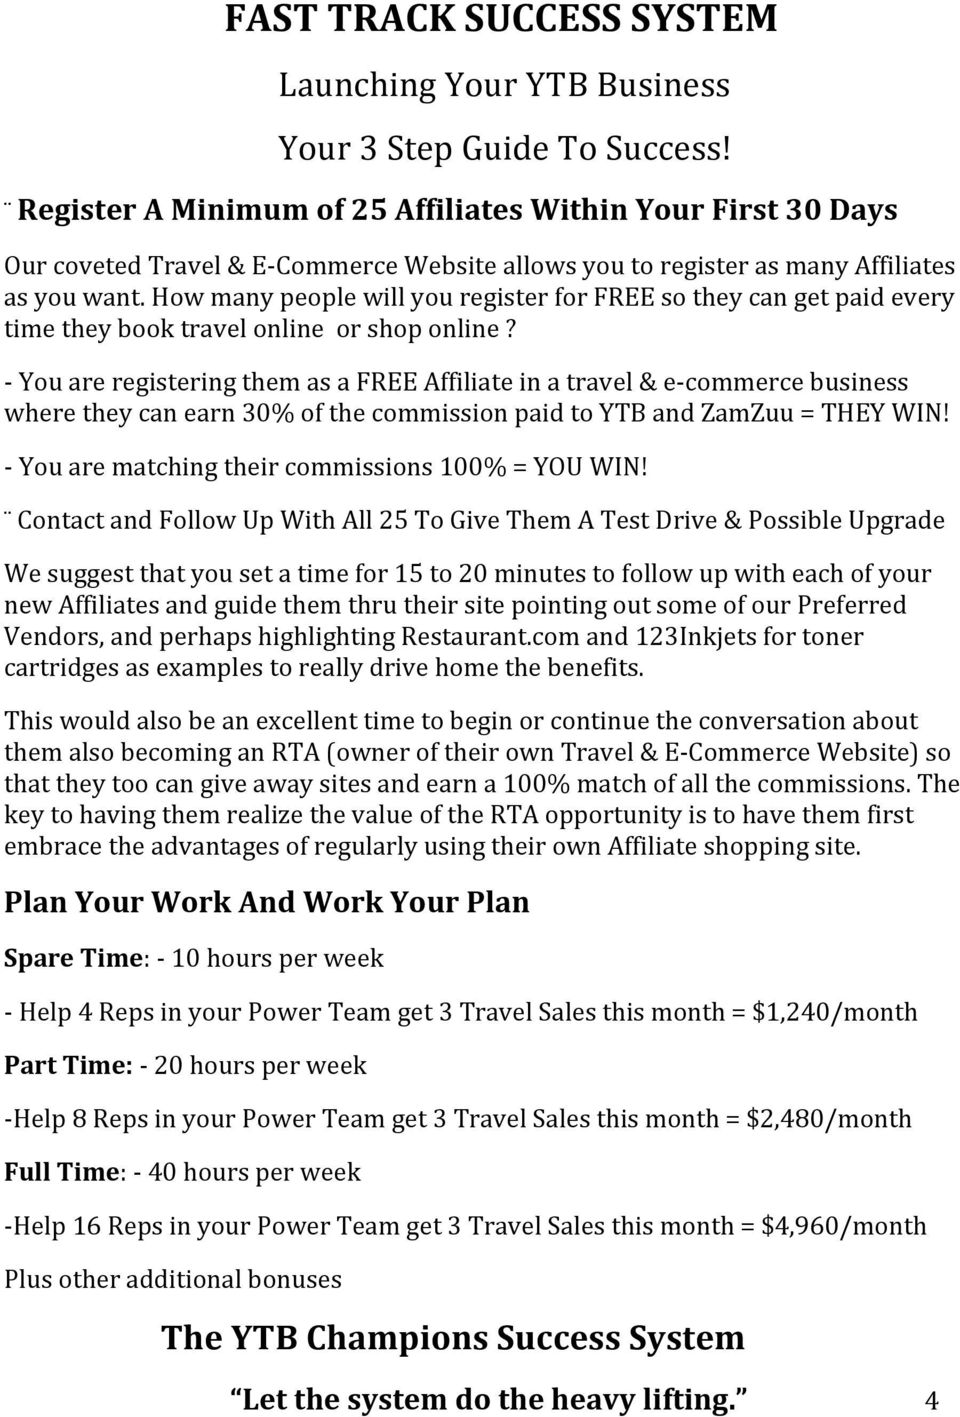 - You are registering them as a FREE Affiliate in a travel & e- commerce business where they can earn 30% of the commission paid to YTB and ZamZuu = THEY WIN!